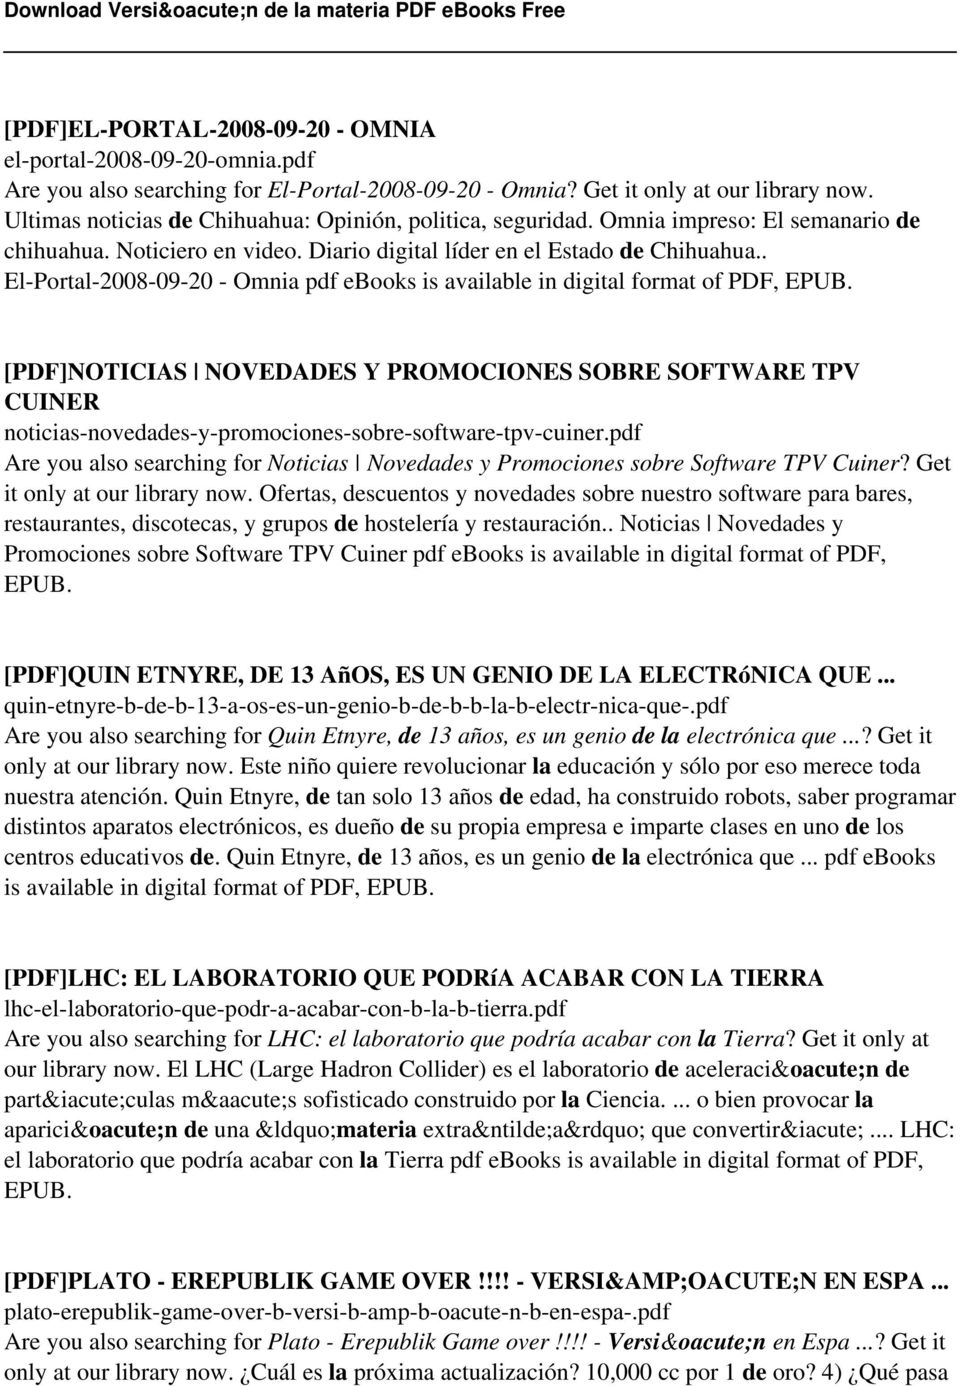 . El-Portal-2008-09-20 - Omnia pdf ebooks is available in digital format of PDF, EPUB.